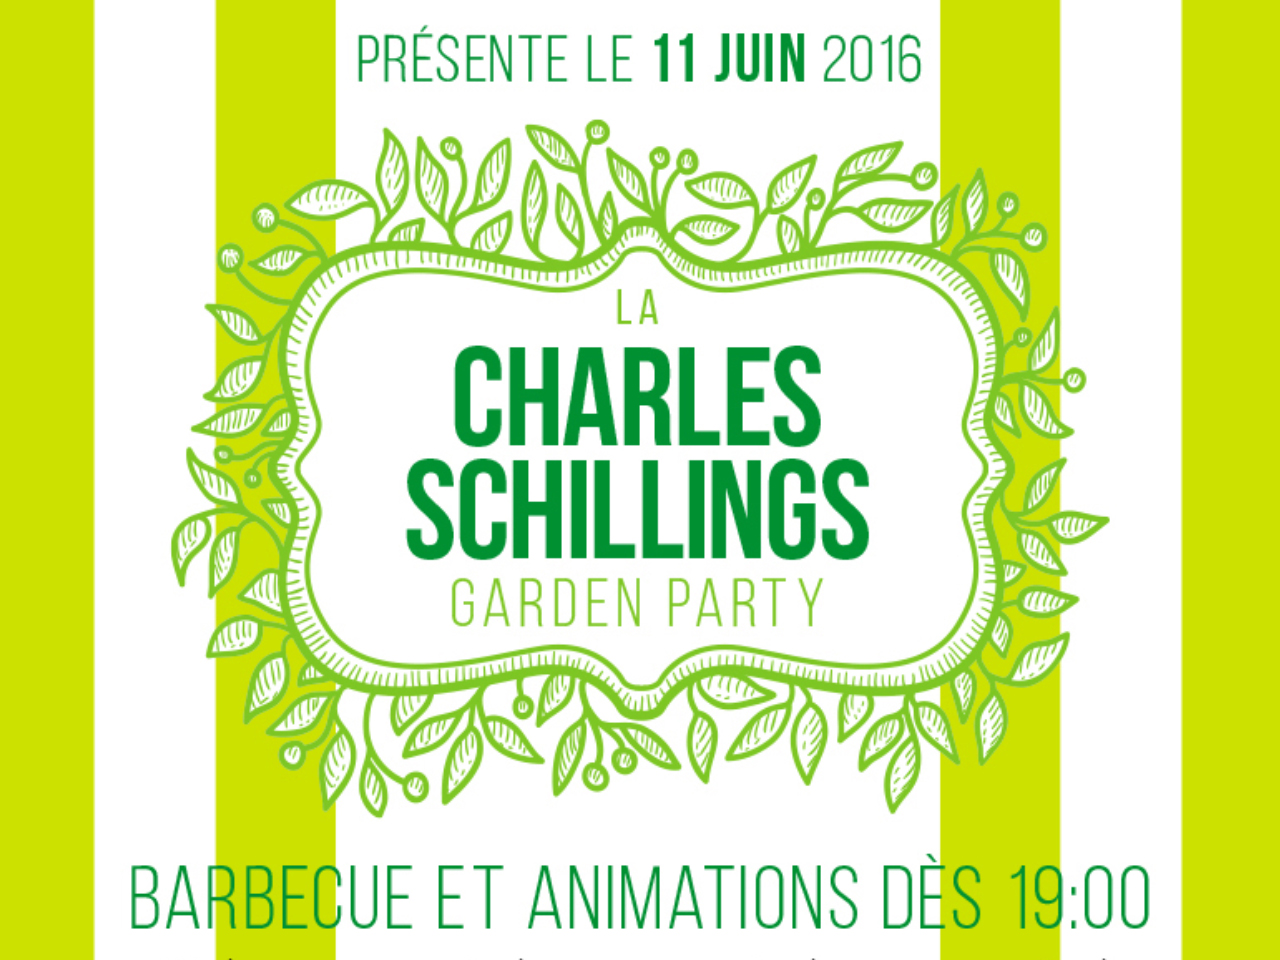 Vidéo et photos de Garden Party « Charles Schillings »